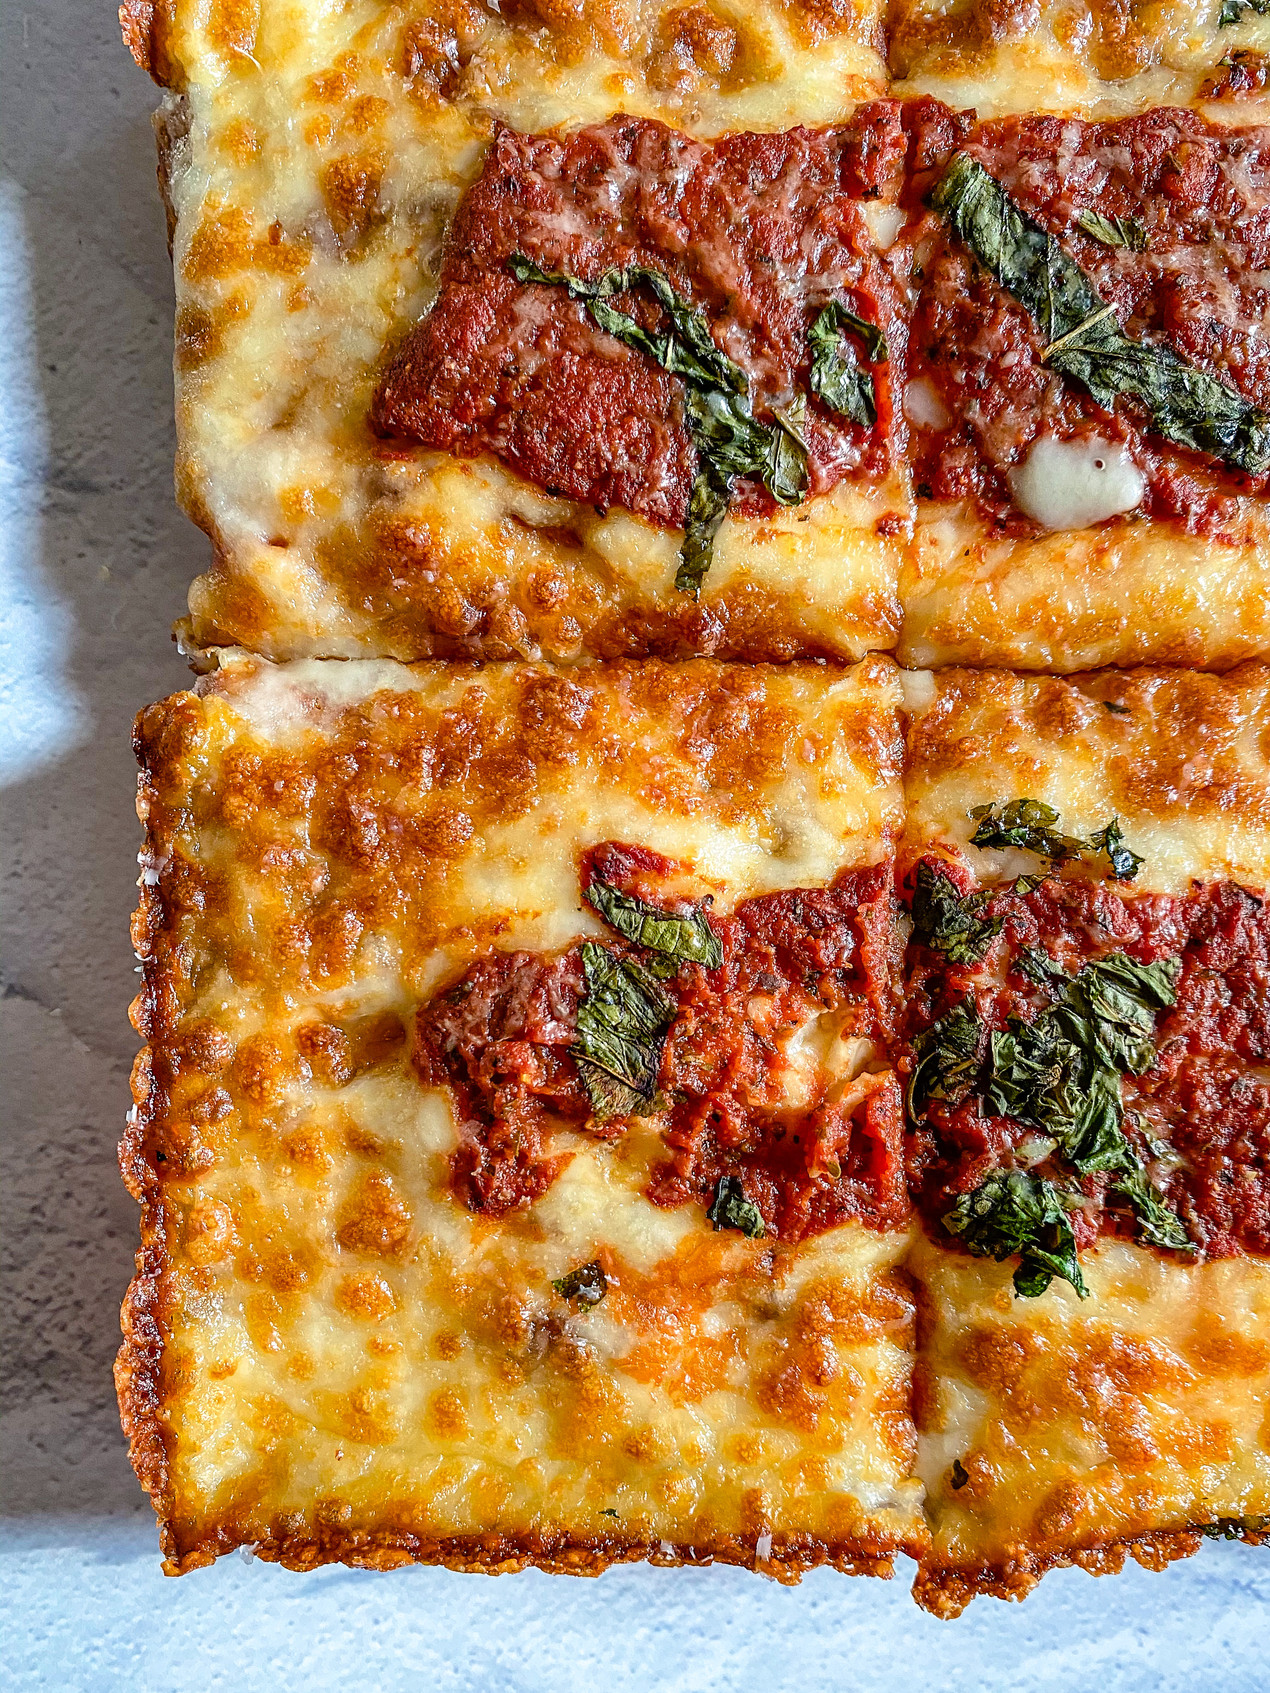 Close up of corner slices of classic Detroit-style pizza from new Black-owned restaurant in DC, Motown Square